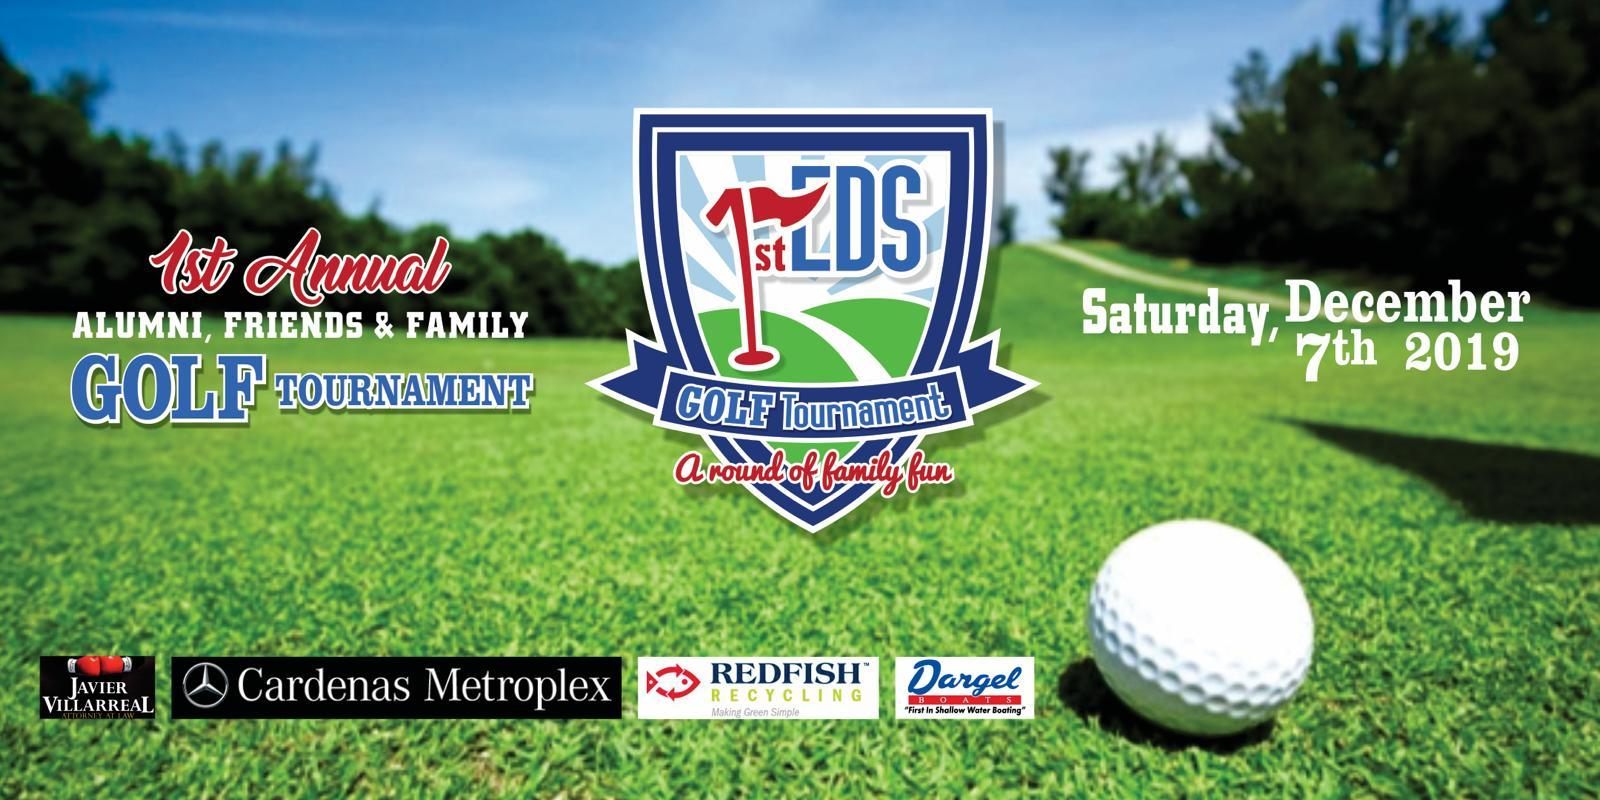 Episcopal Day School 1st Annual Alumni, Friends & Family Golf Tournament